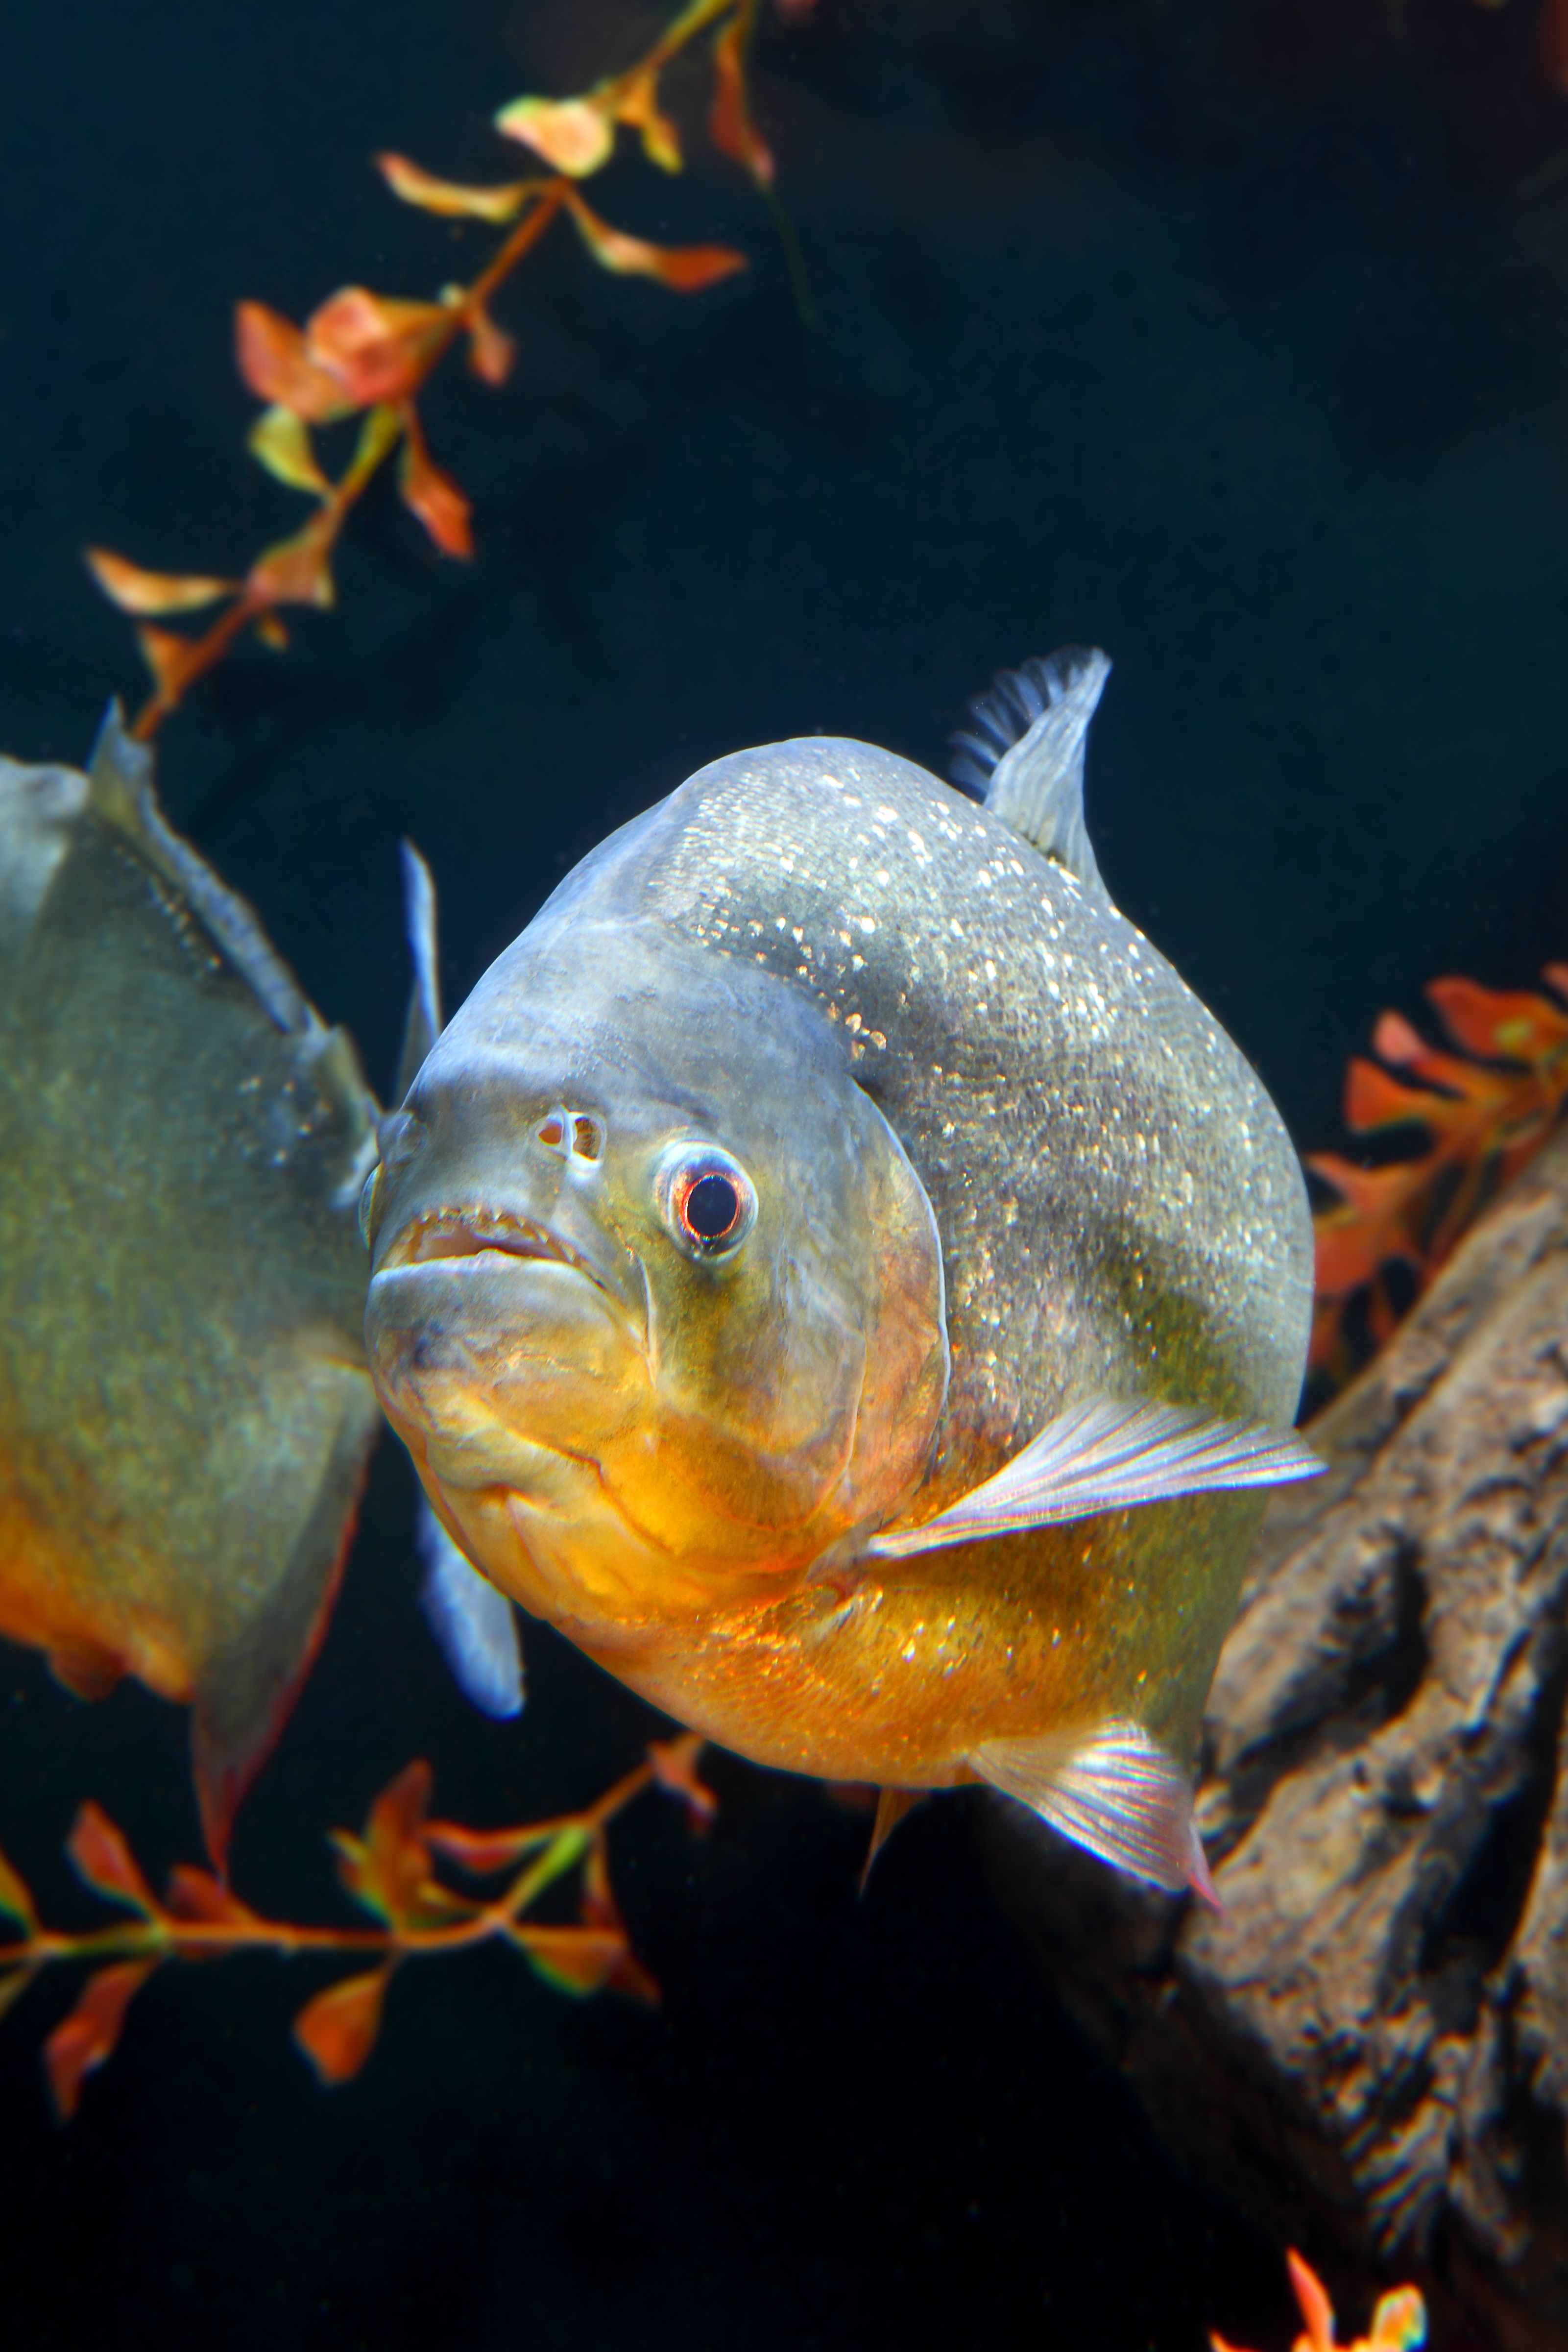 Watch A Video Of Our Red Bellied Piranhas Feeding Via Gopro